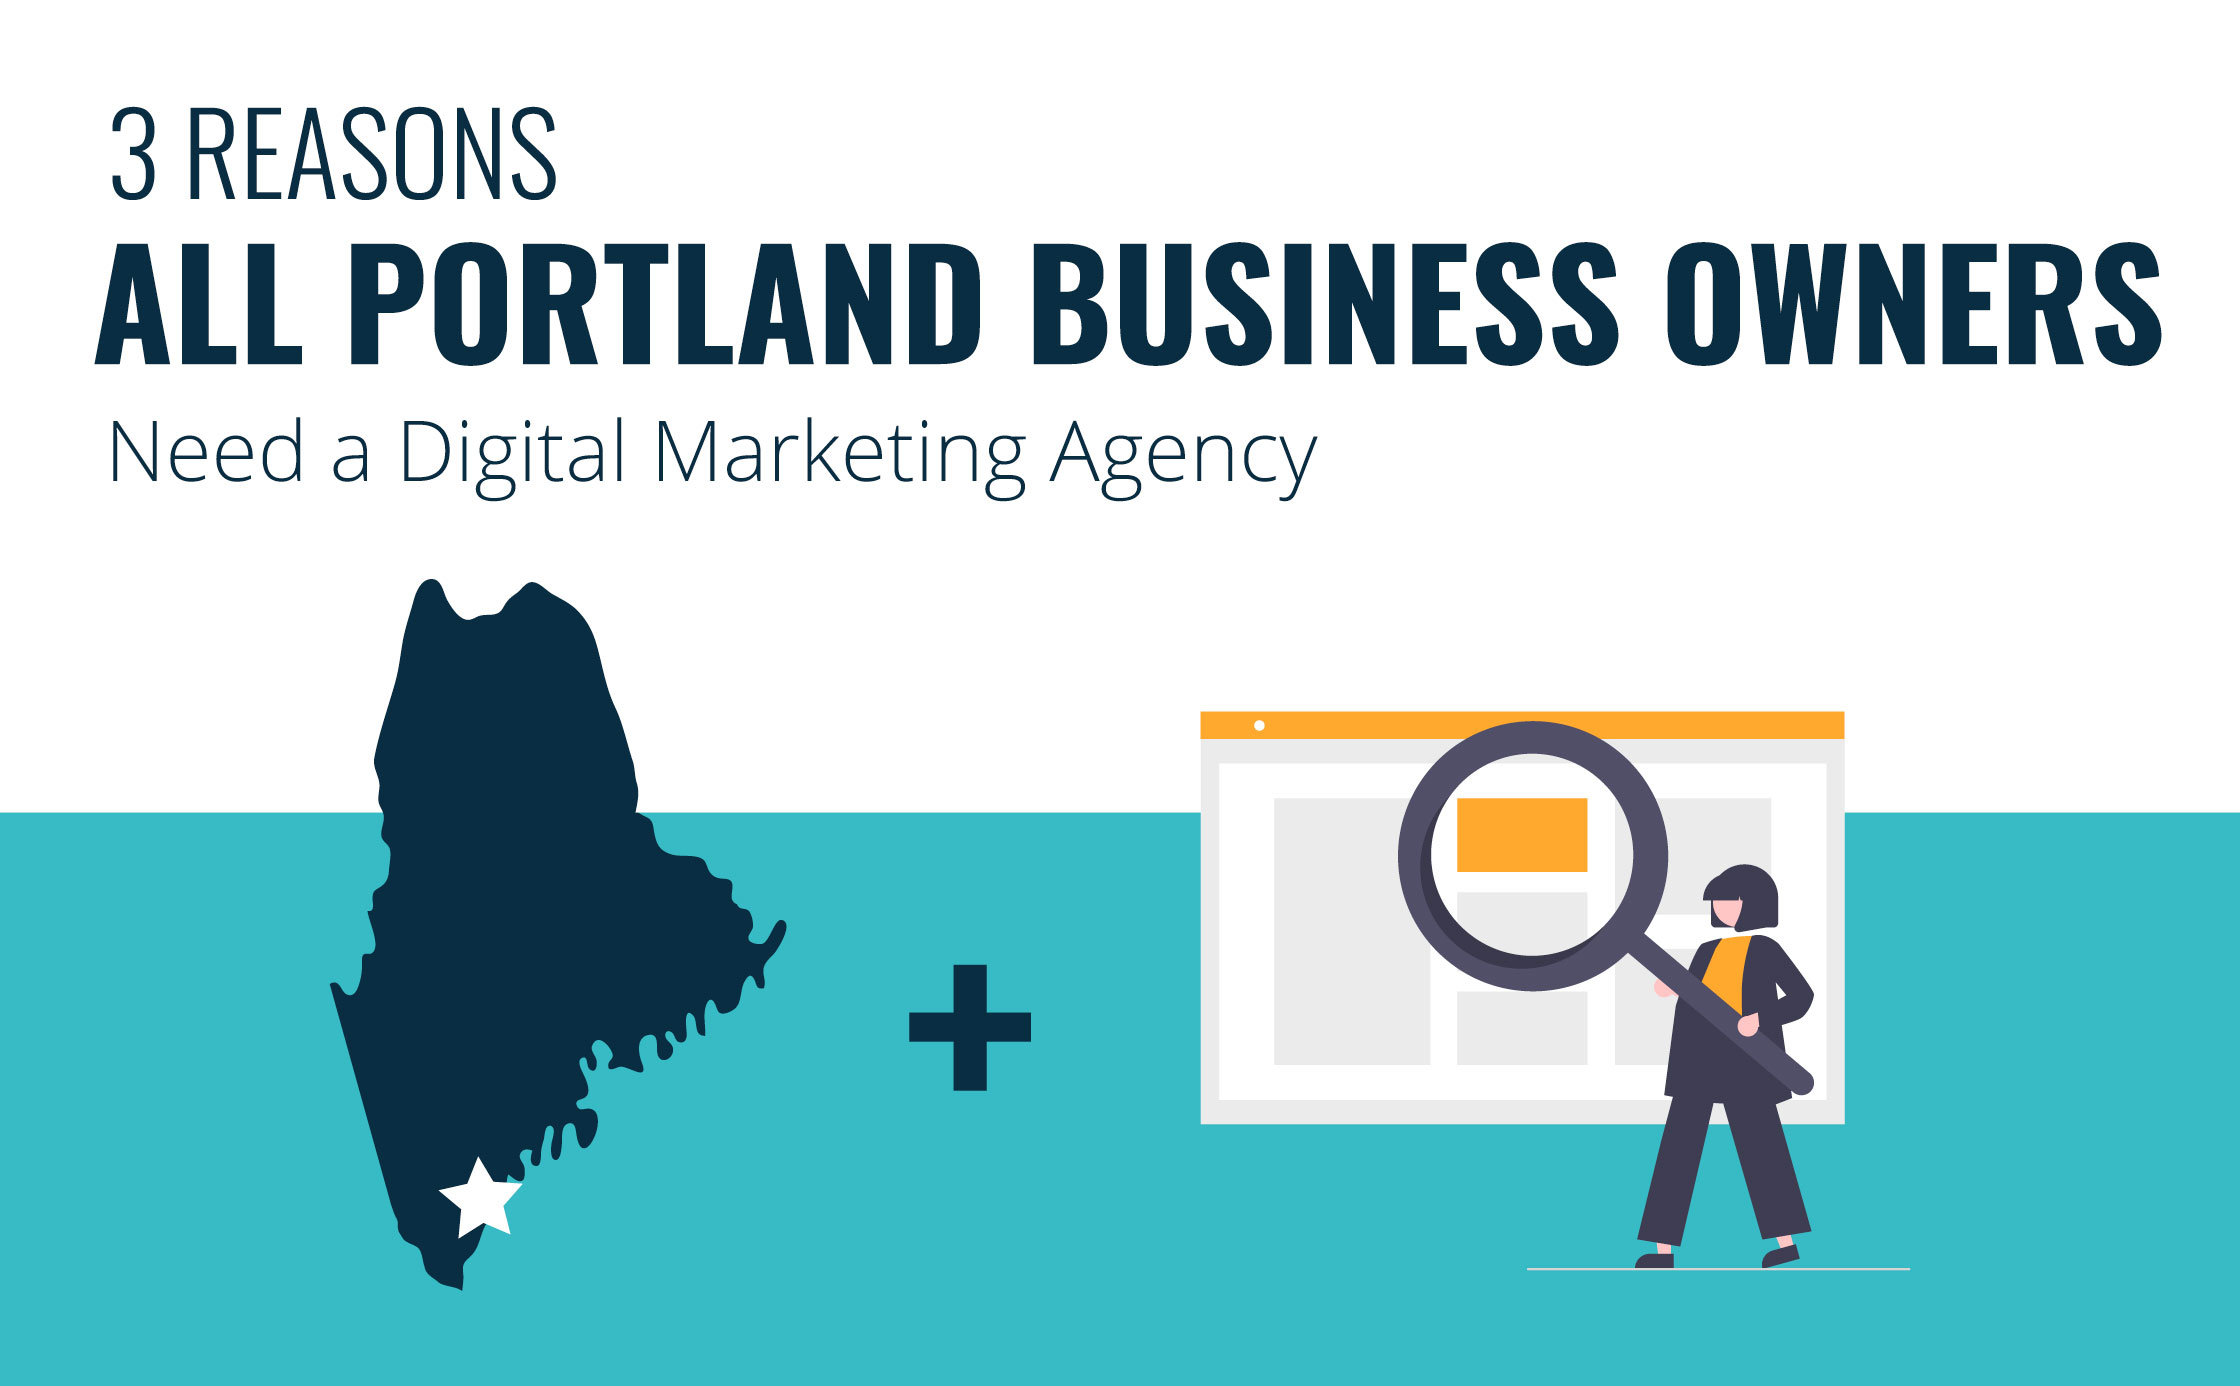 3-reasons-portland-business-owners